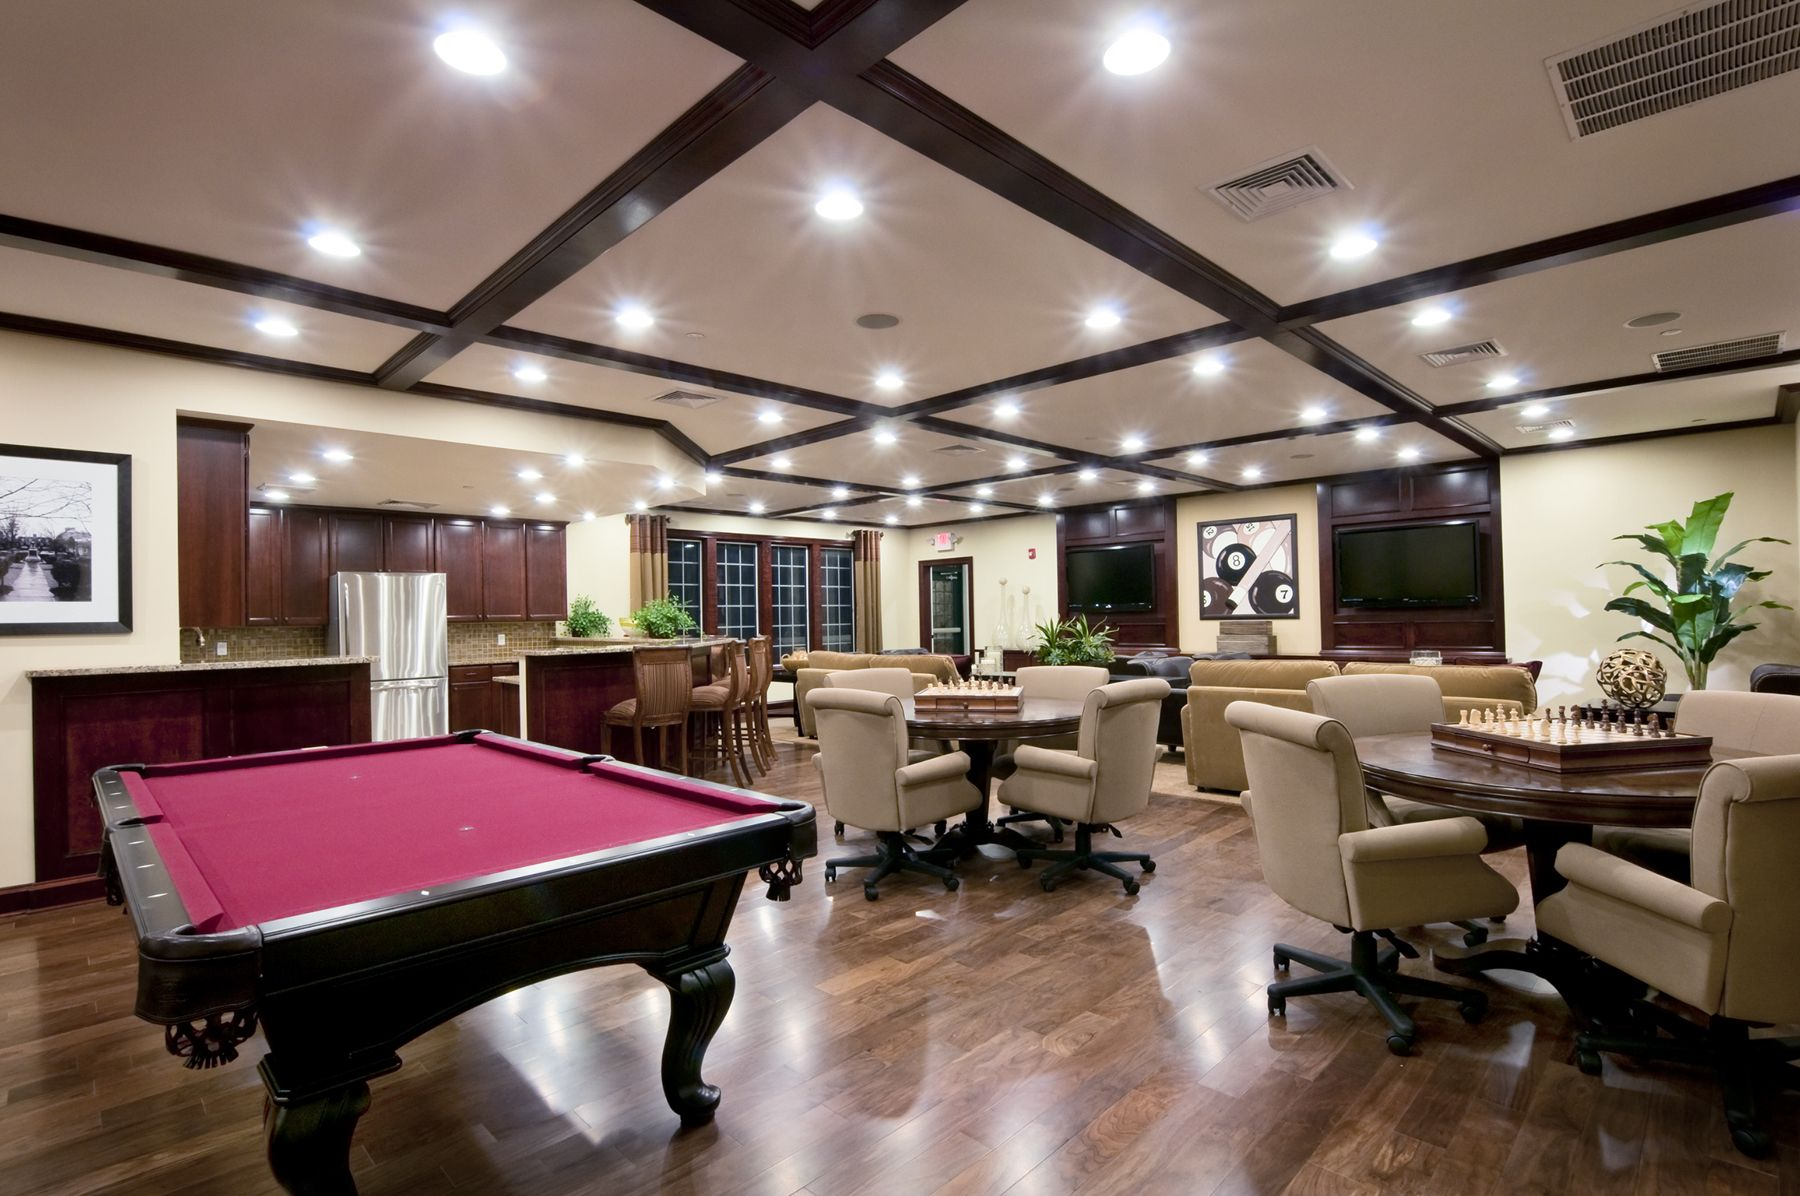 Image result for clubhouse card room designs   Clubhouse   Pinterest on parlor room designs, pool room designs, model home room designs, patio room designs, indoor spa room designs, garage room designs, dark blue room designs, outdoor hot tub room designs, fireplace room designs, affordable living room designs, tanning bed room designs, 49ers room designs, mini theatre room designs,